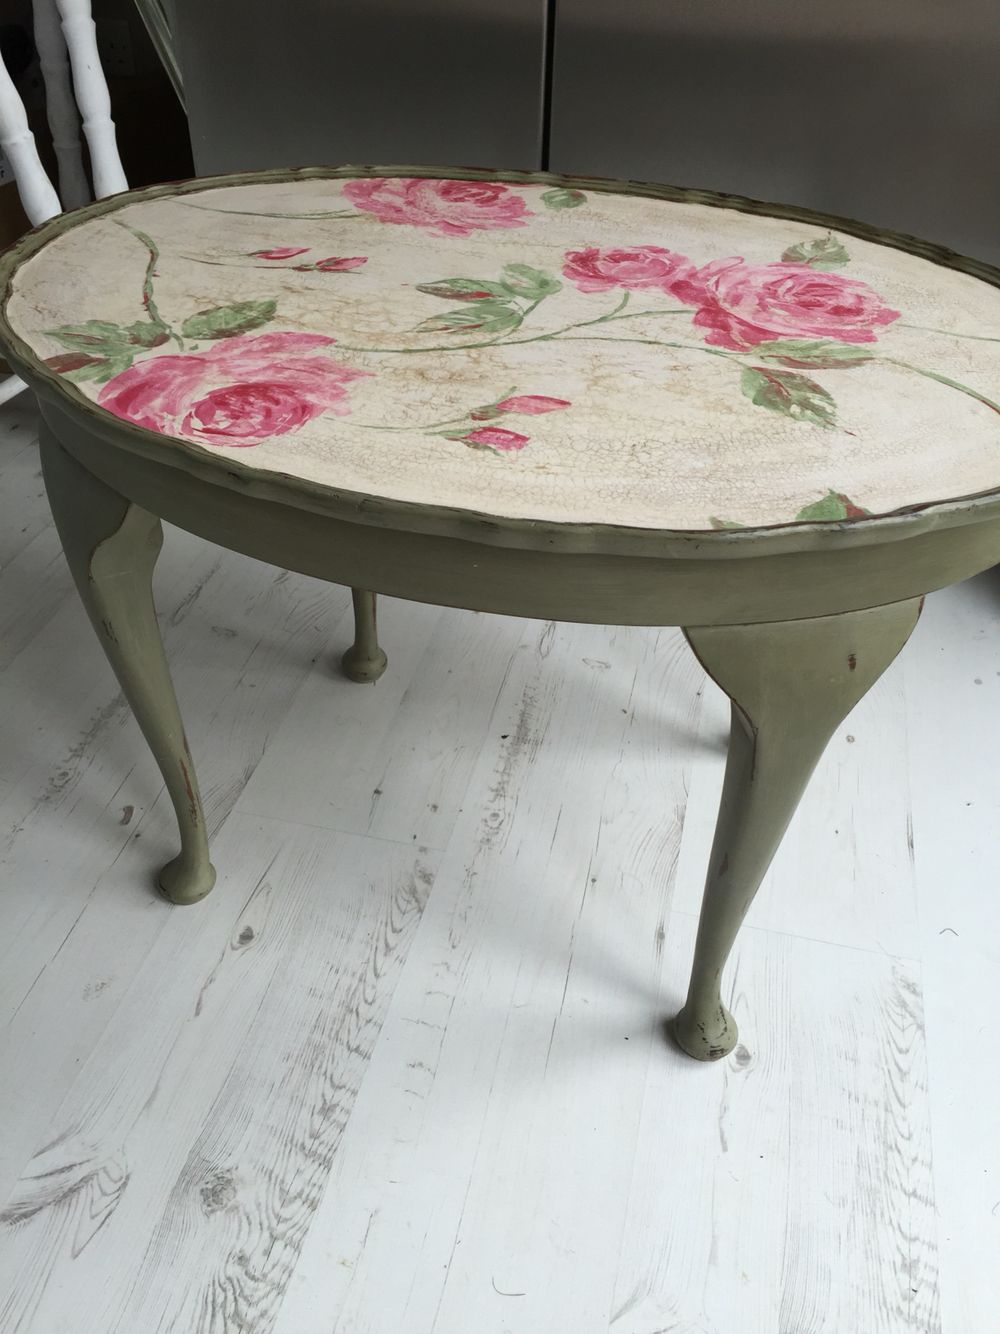 Cute Oval Coffee Table Painted Using Annie Sloan Olive Decoupaged Using A Beautiful Floral Pape Funky Painted Furniture Decoupage Coffee Table Painted Table